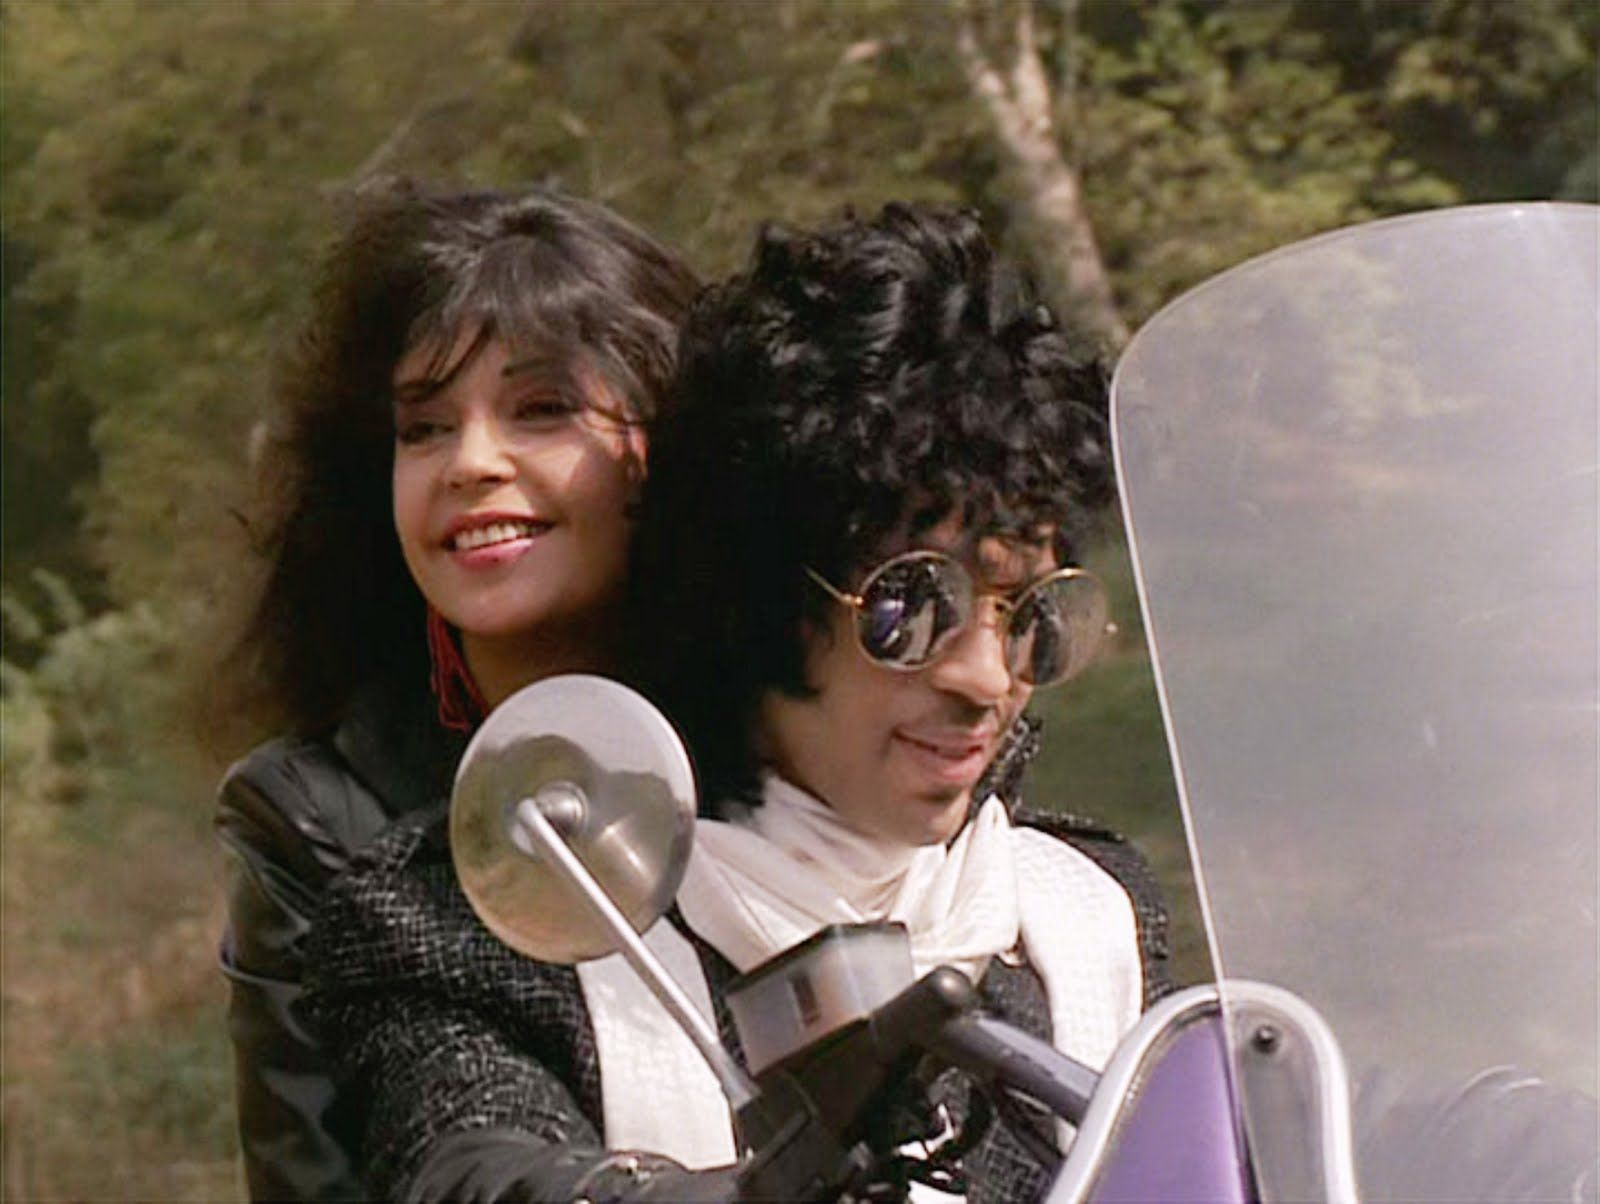 Image result for prince and apollonia on purple bike